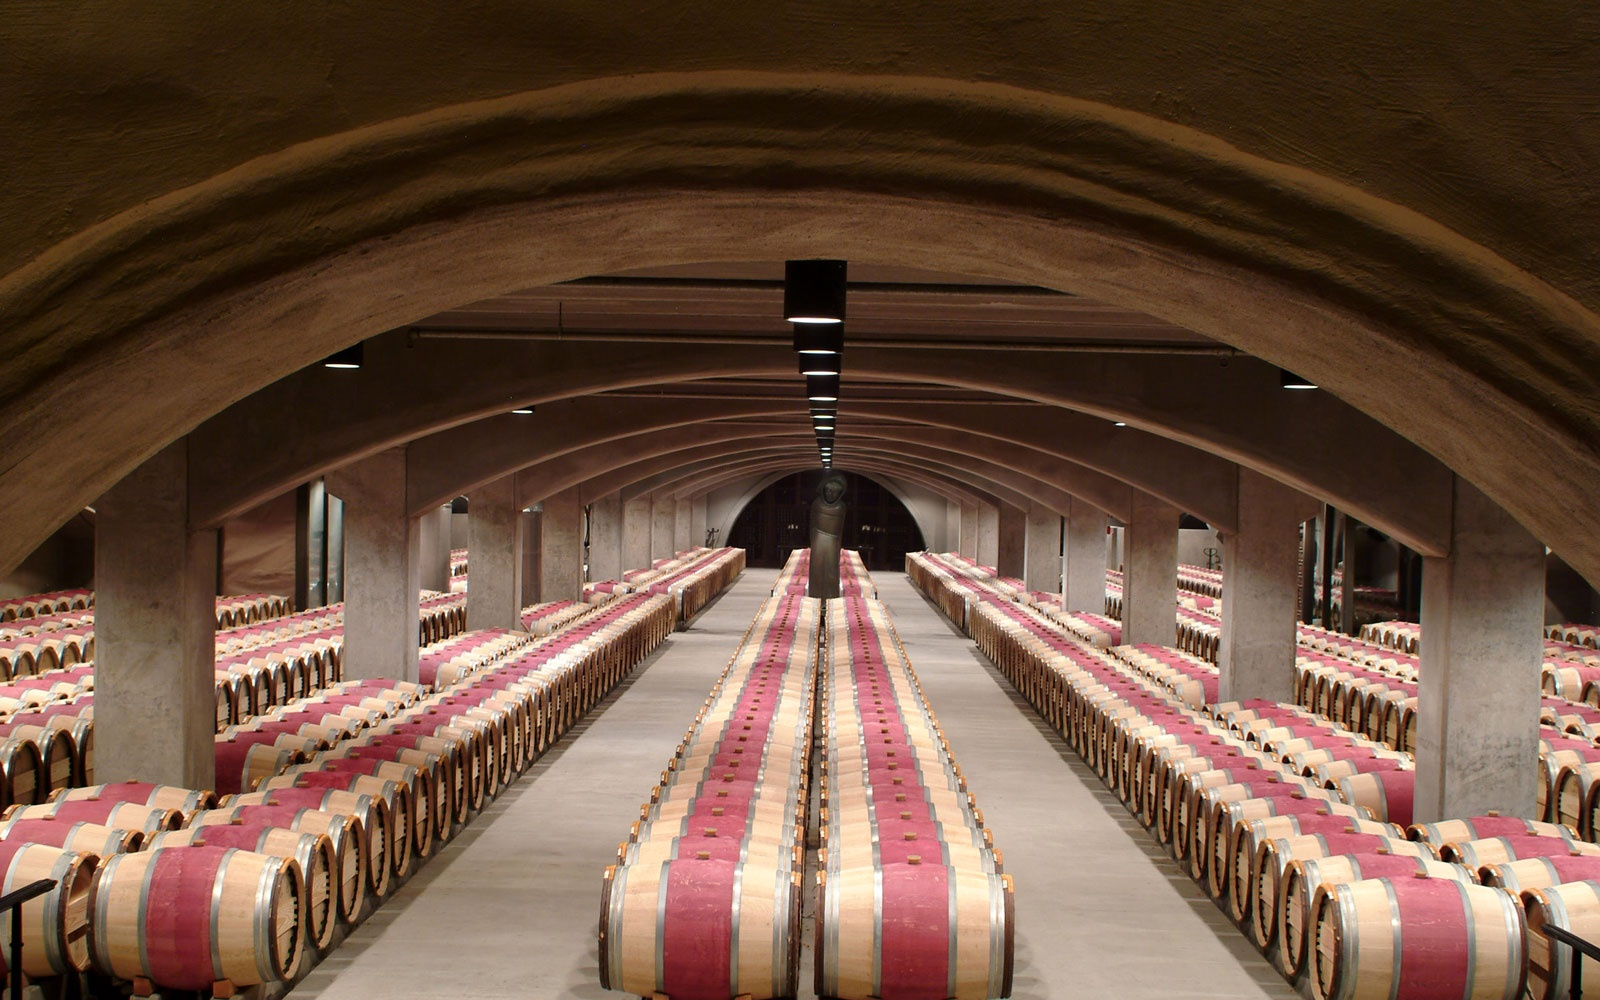 Robert Mondavi Winery, Napa Valley, California